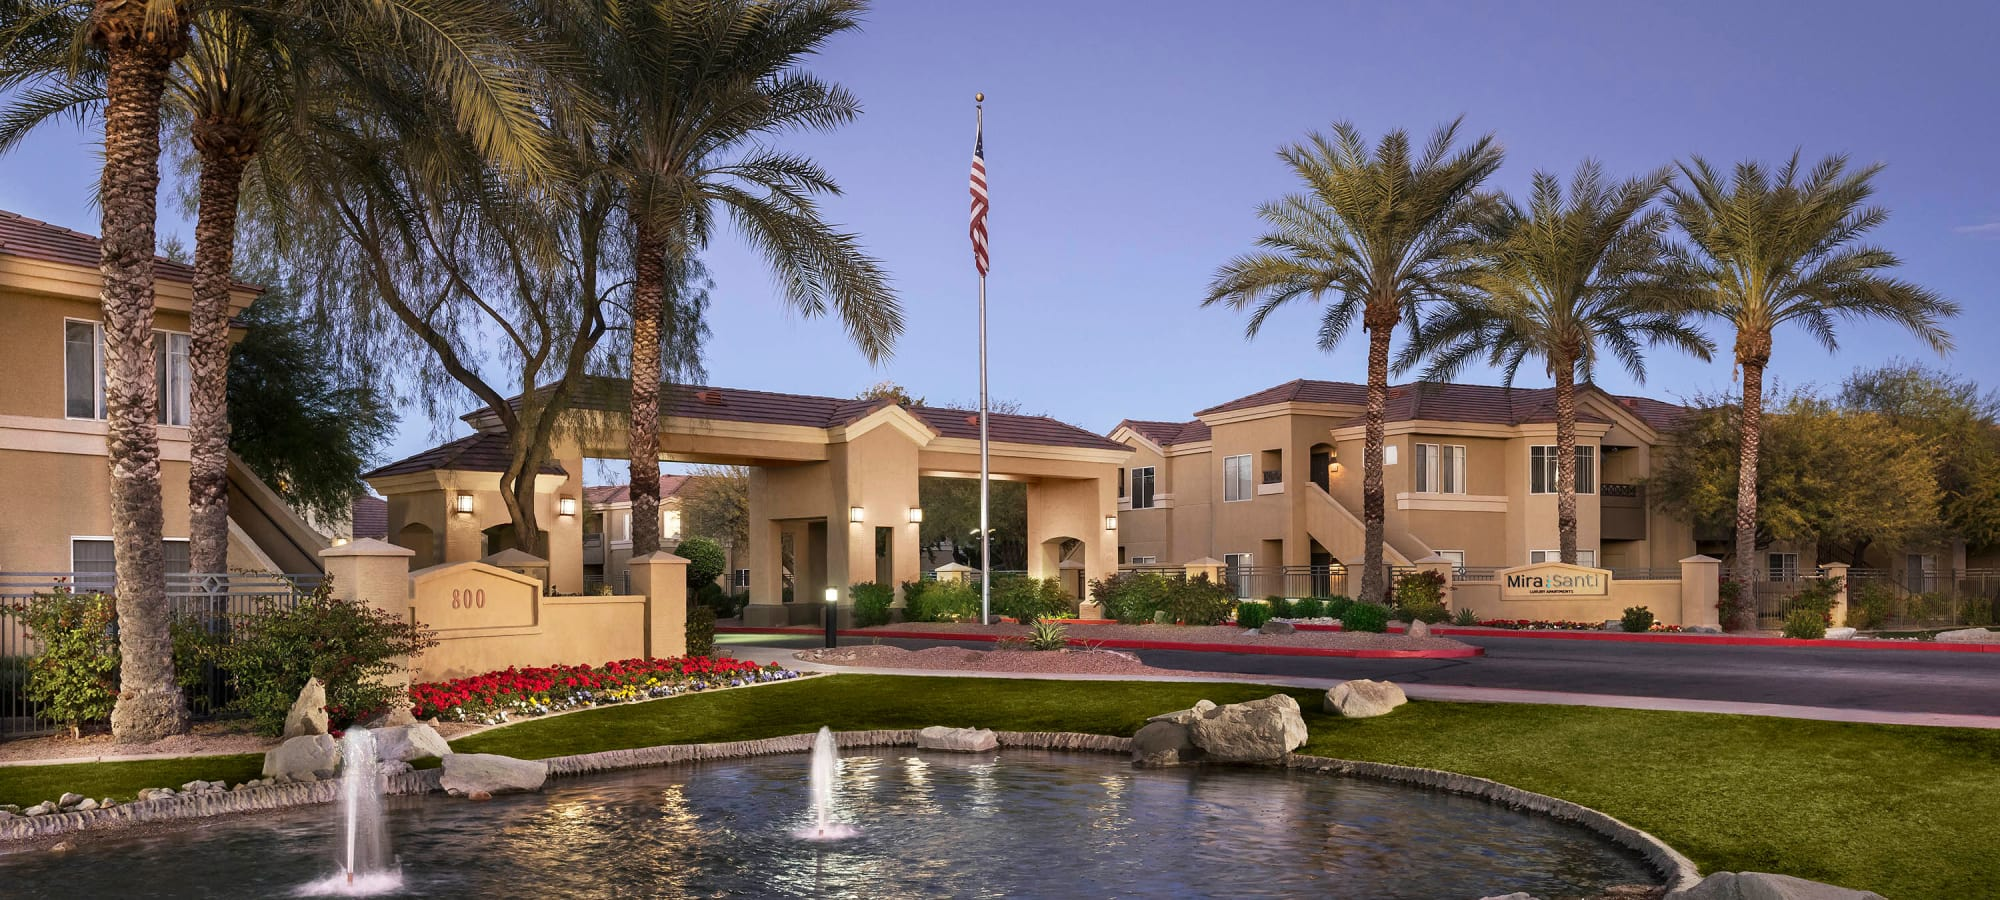 Fountains at the entrance to our community at Mira Santi in Chandler, Arizona